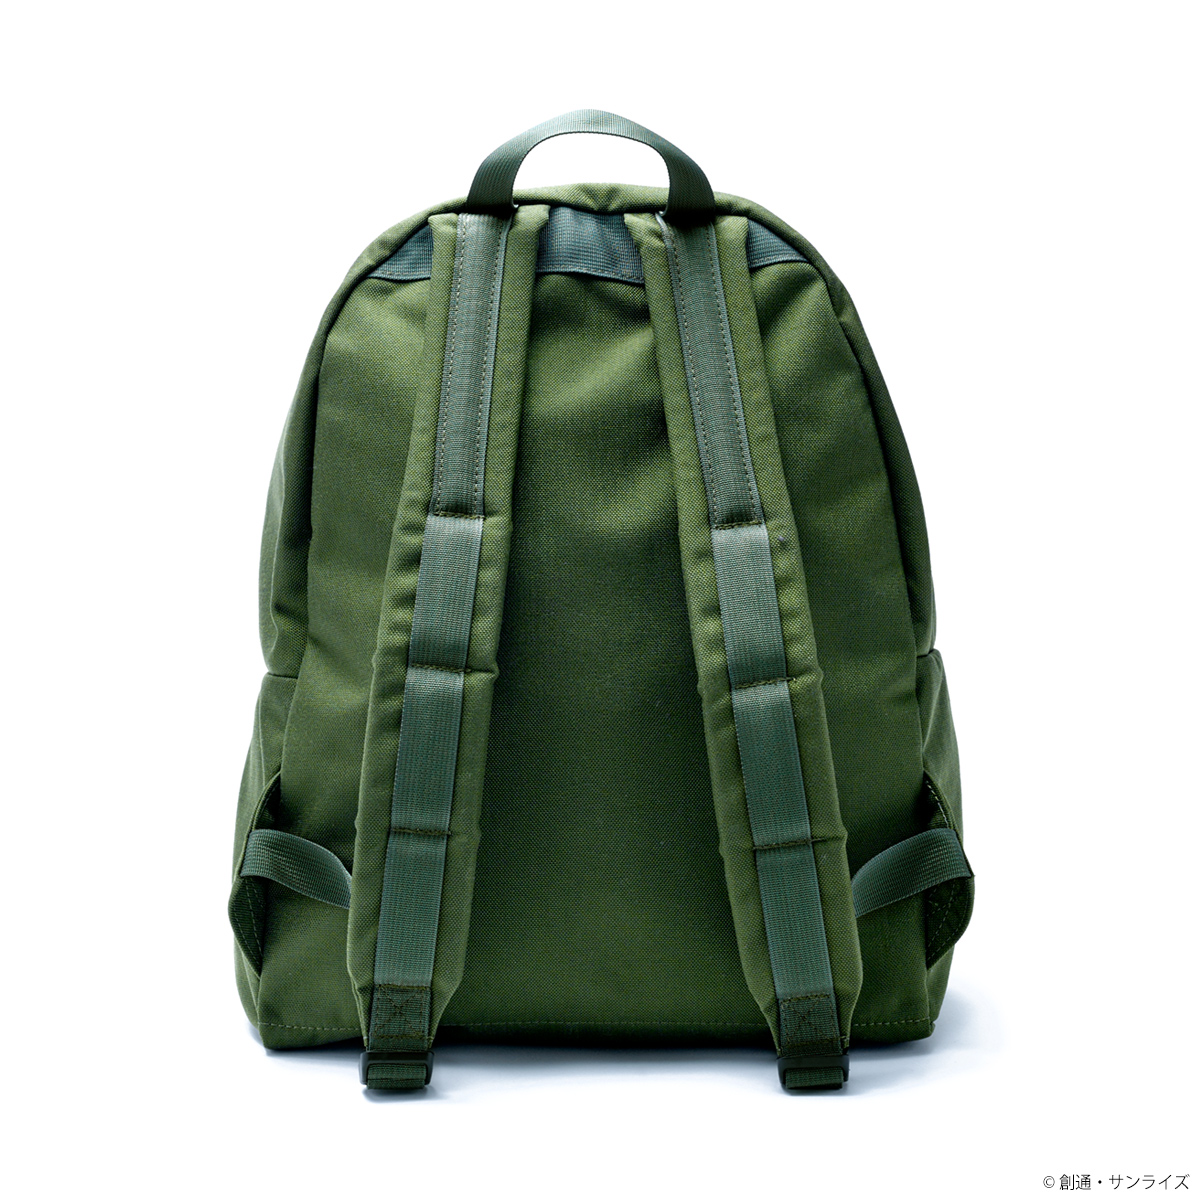 STRICT-G.ARMS M.I.S.『機動戦士ガンダム』DAYPACK ZEON FORCES